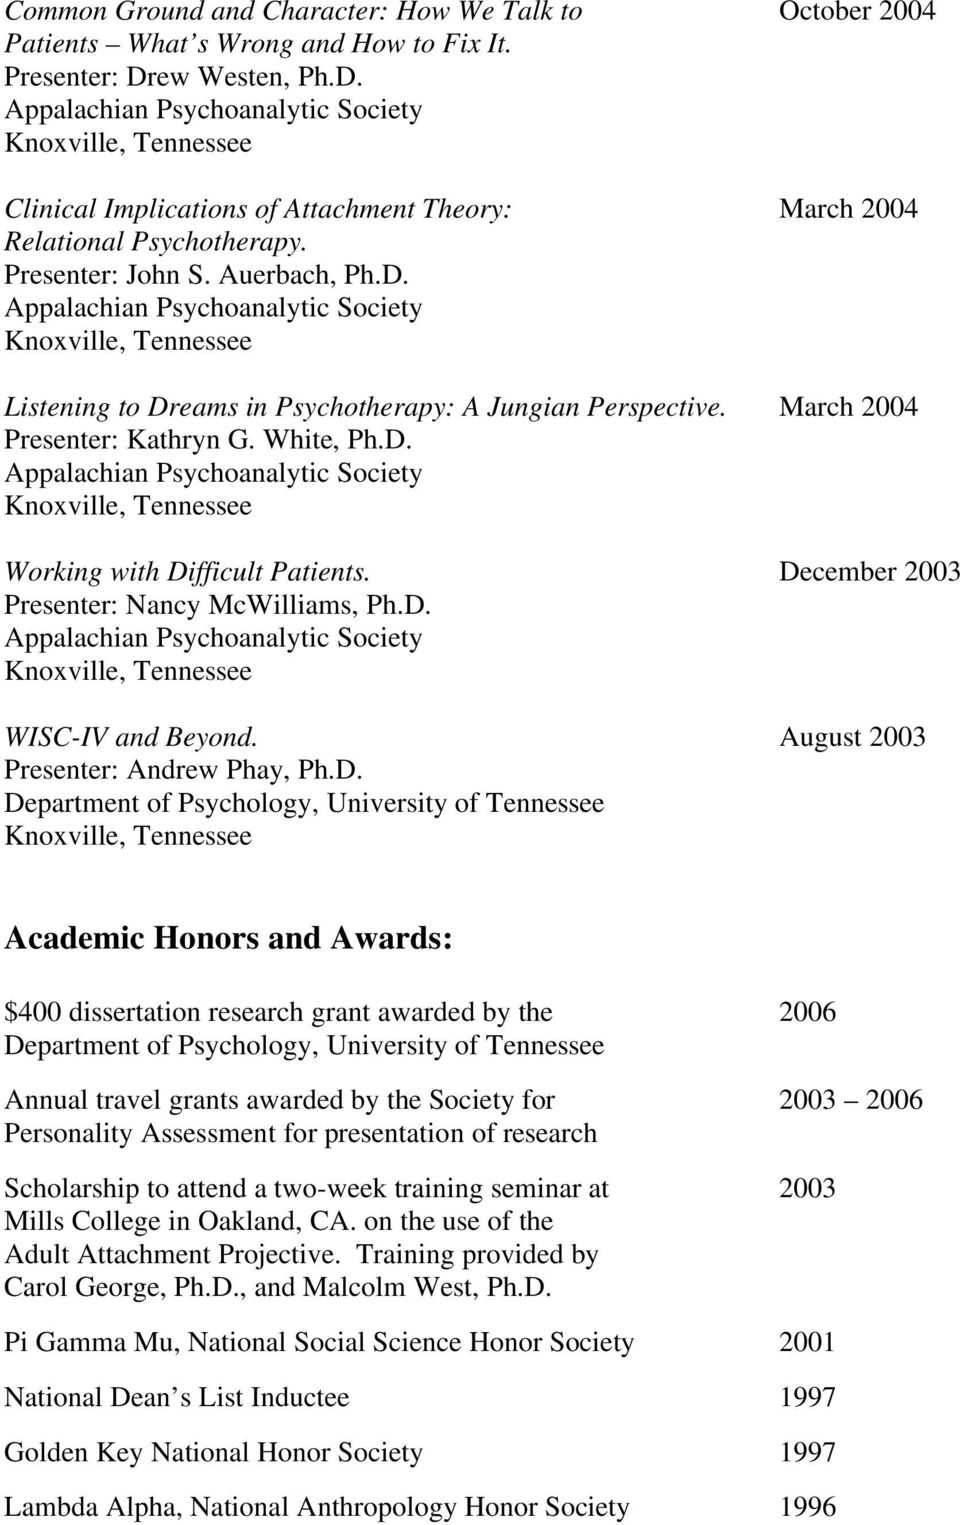 December 2003 Presenter: Nancy McWilliams, Ph.D. WISC-IV and Beyond. August 2003 Presenter: Andrew Phay, Ph.D. Department of Psychology, Academic Honors and Awards: $400 dissertation research grant